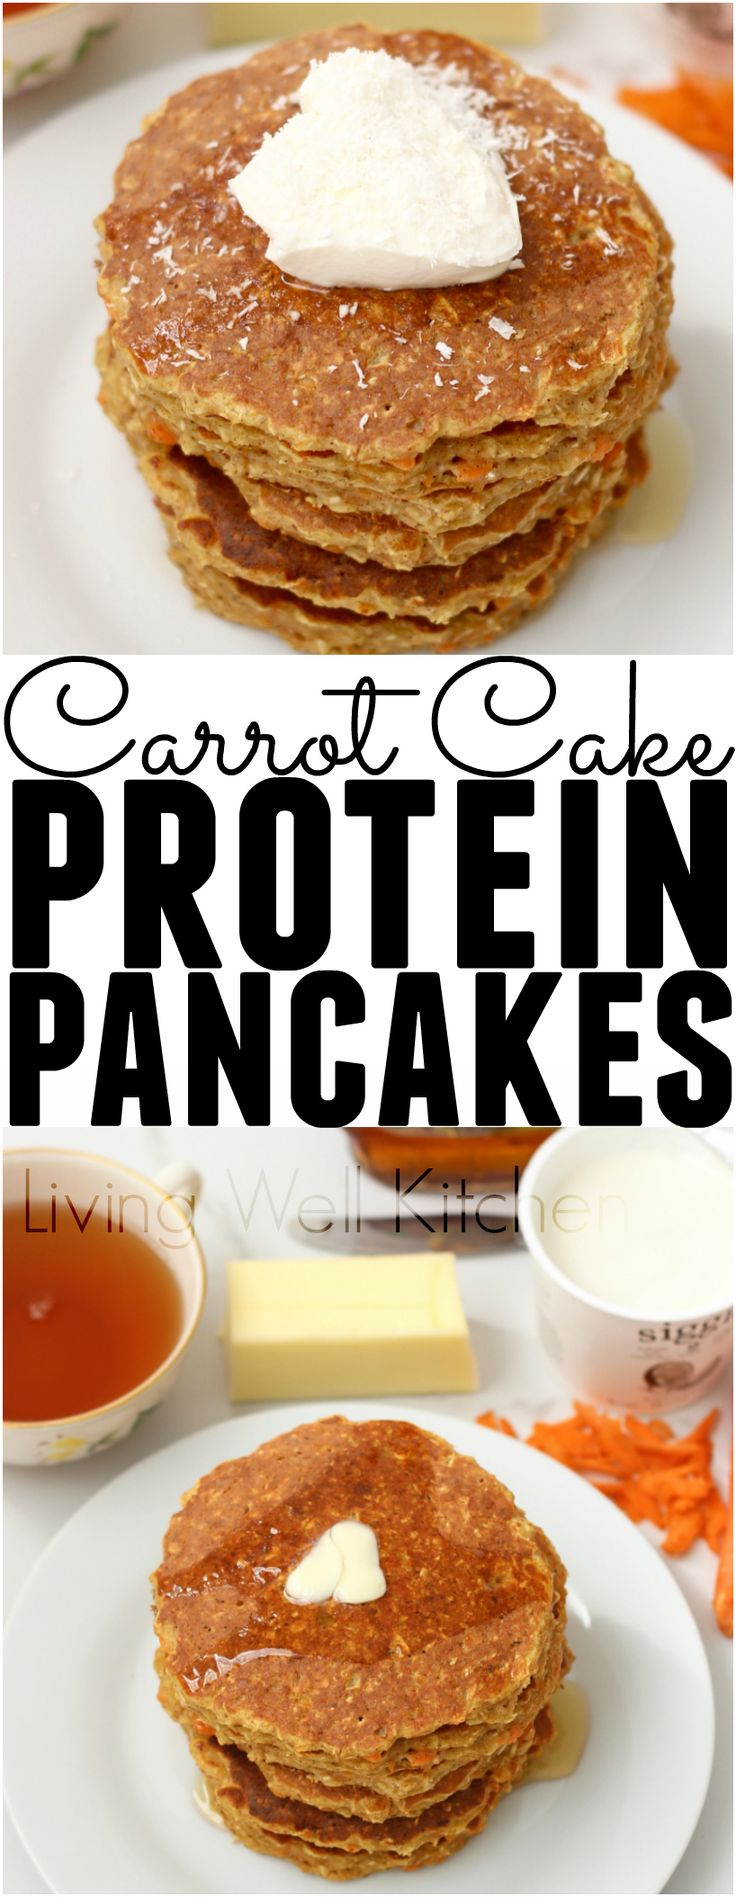 Carrot Cake Protein Pancakes | Recipe | Gluten, Carrot cakes and Blog